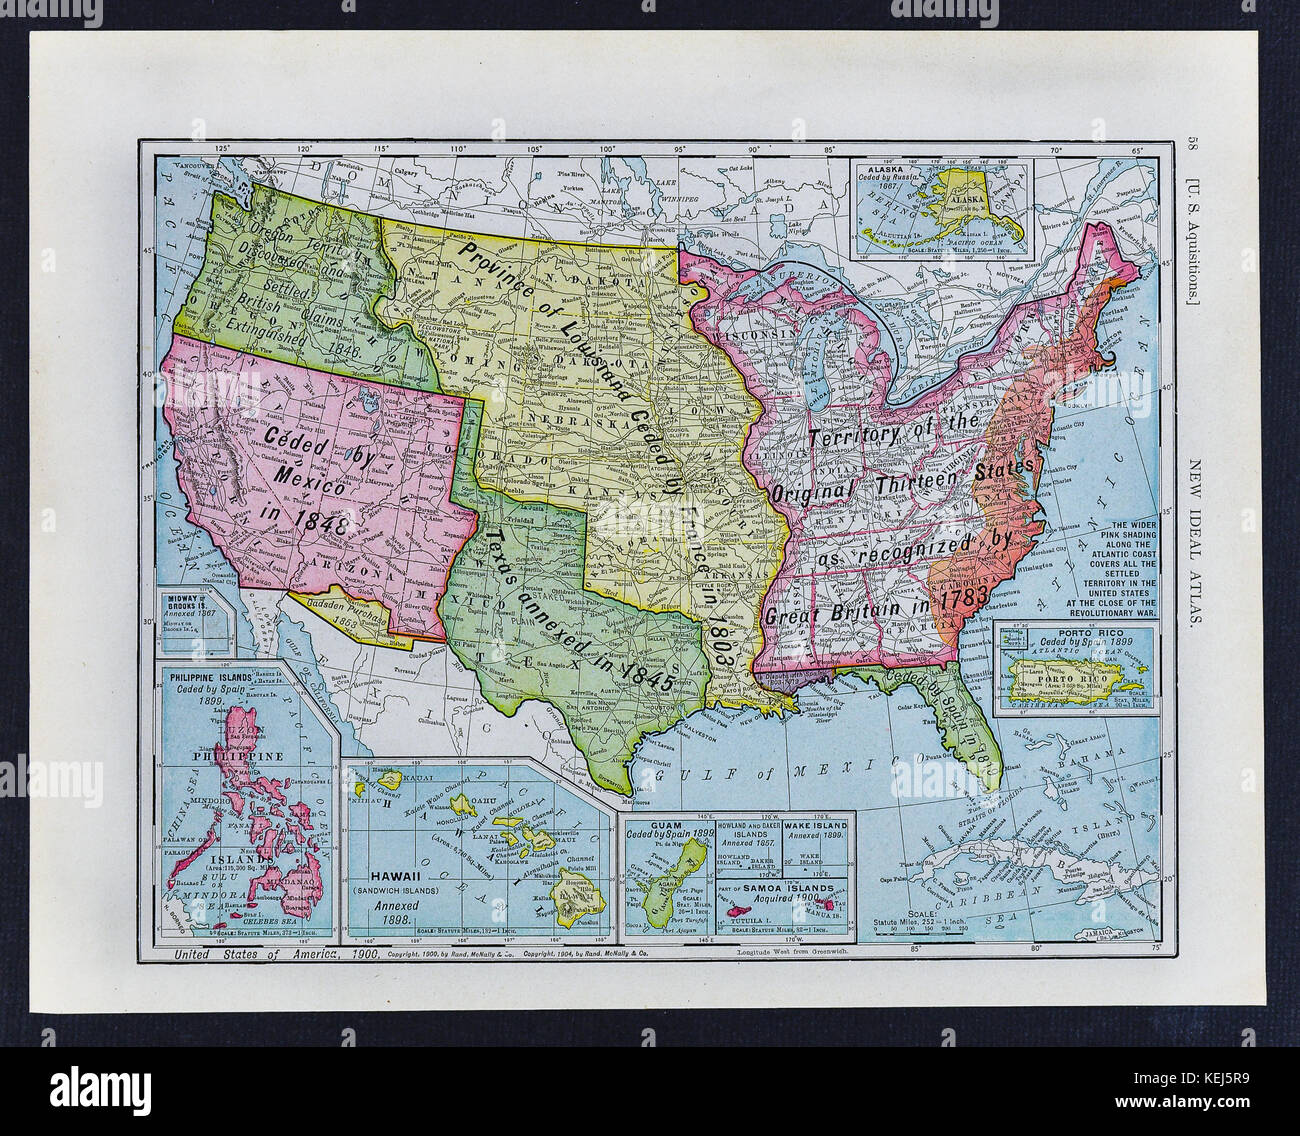 1911 McNally Antique Historical Map of the United States showing the ...